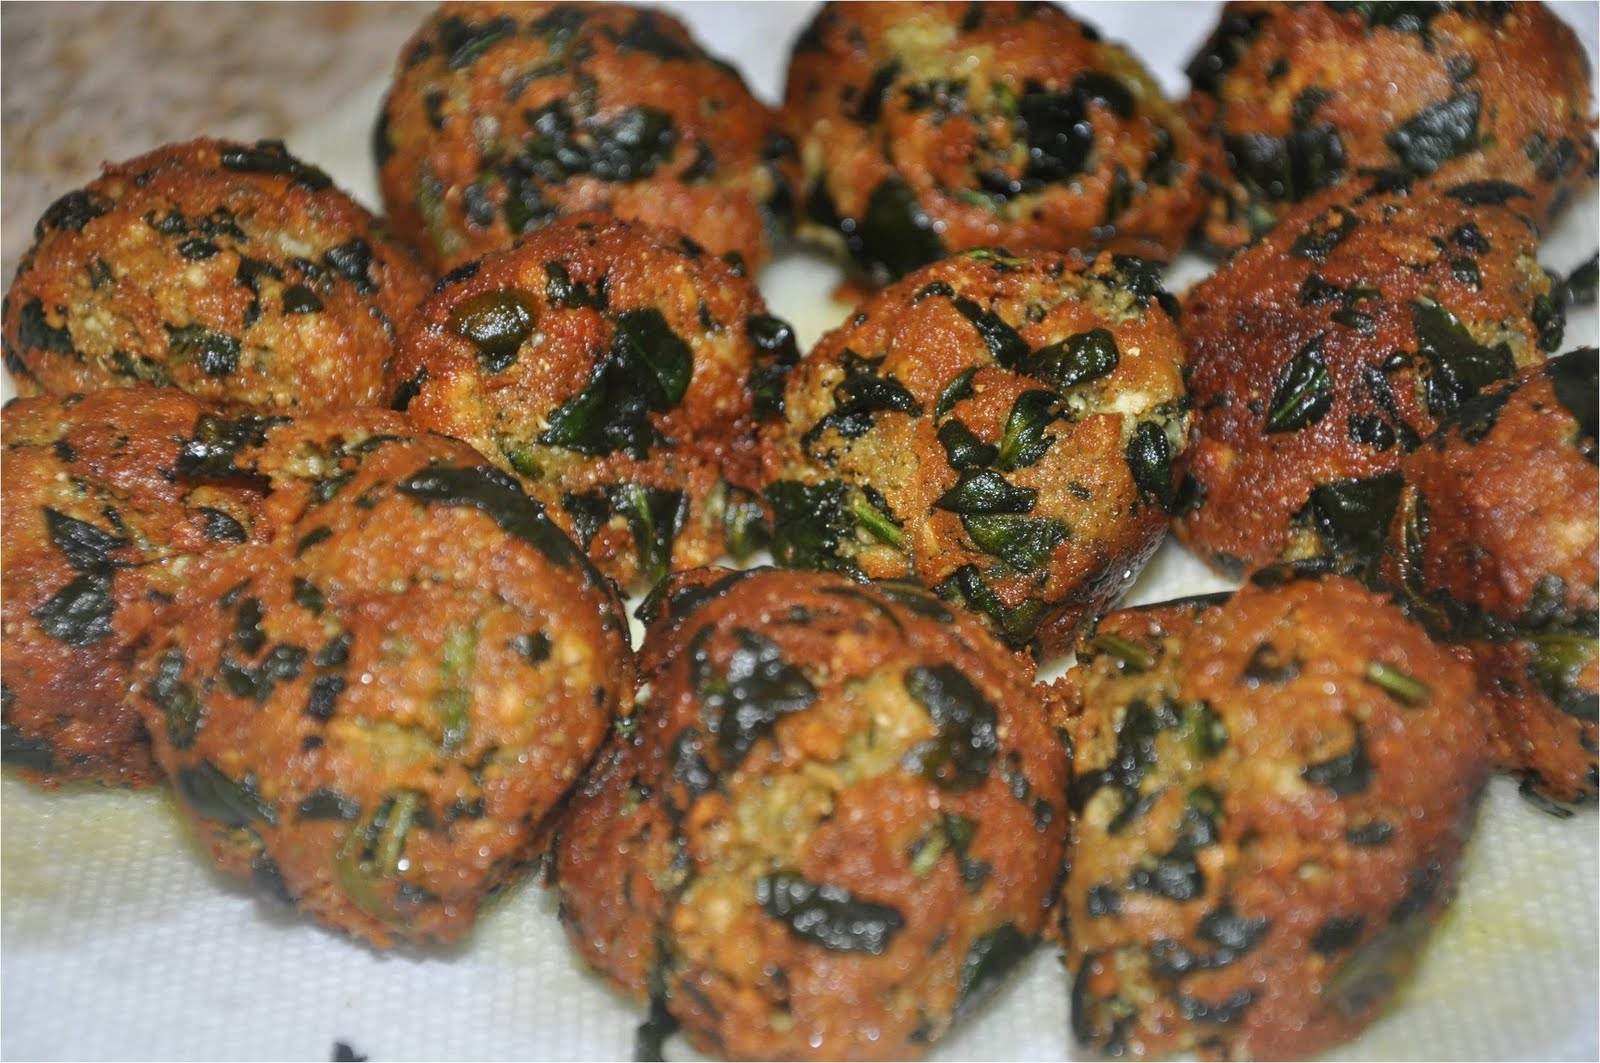 Mharo rajasthans recipes rajasthan a state in western india palak paneer kofta yum and healthy too forumfinder Images